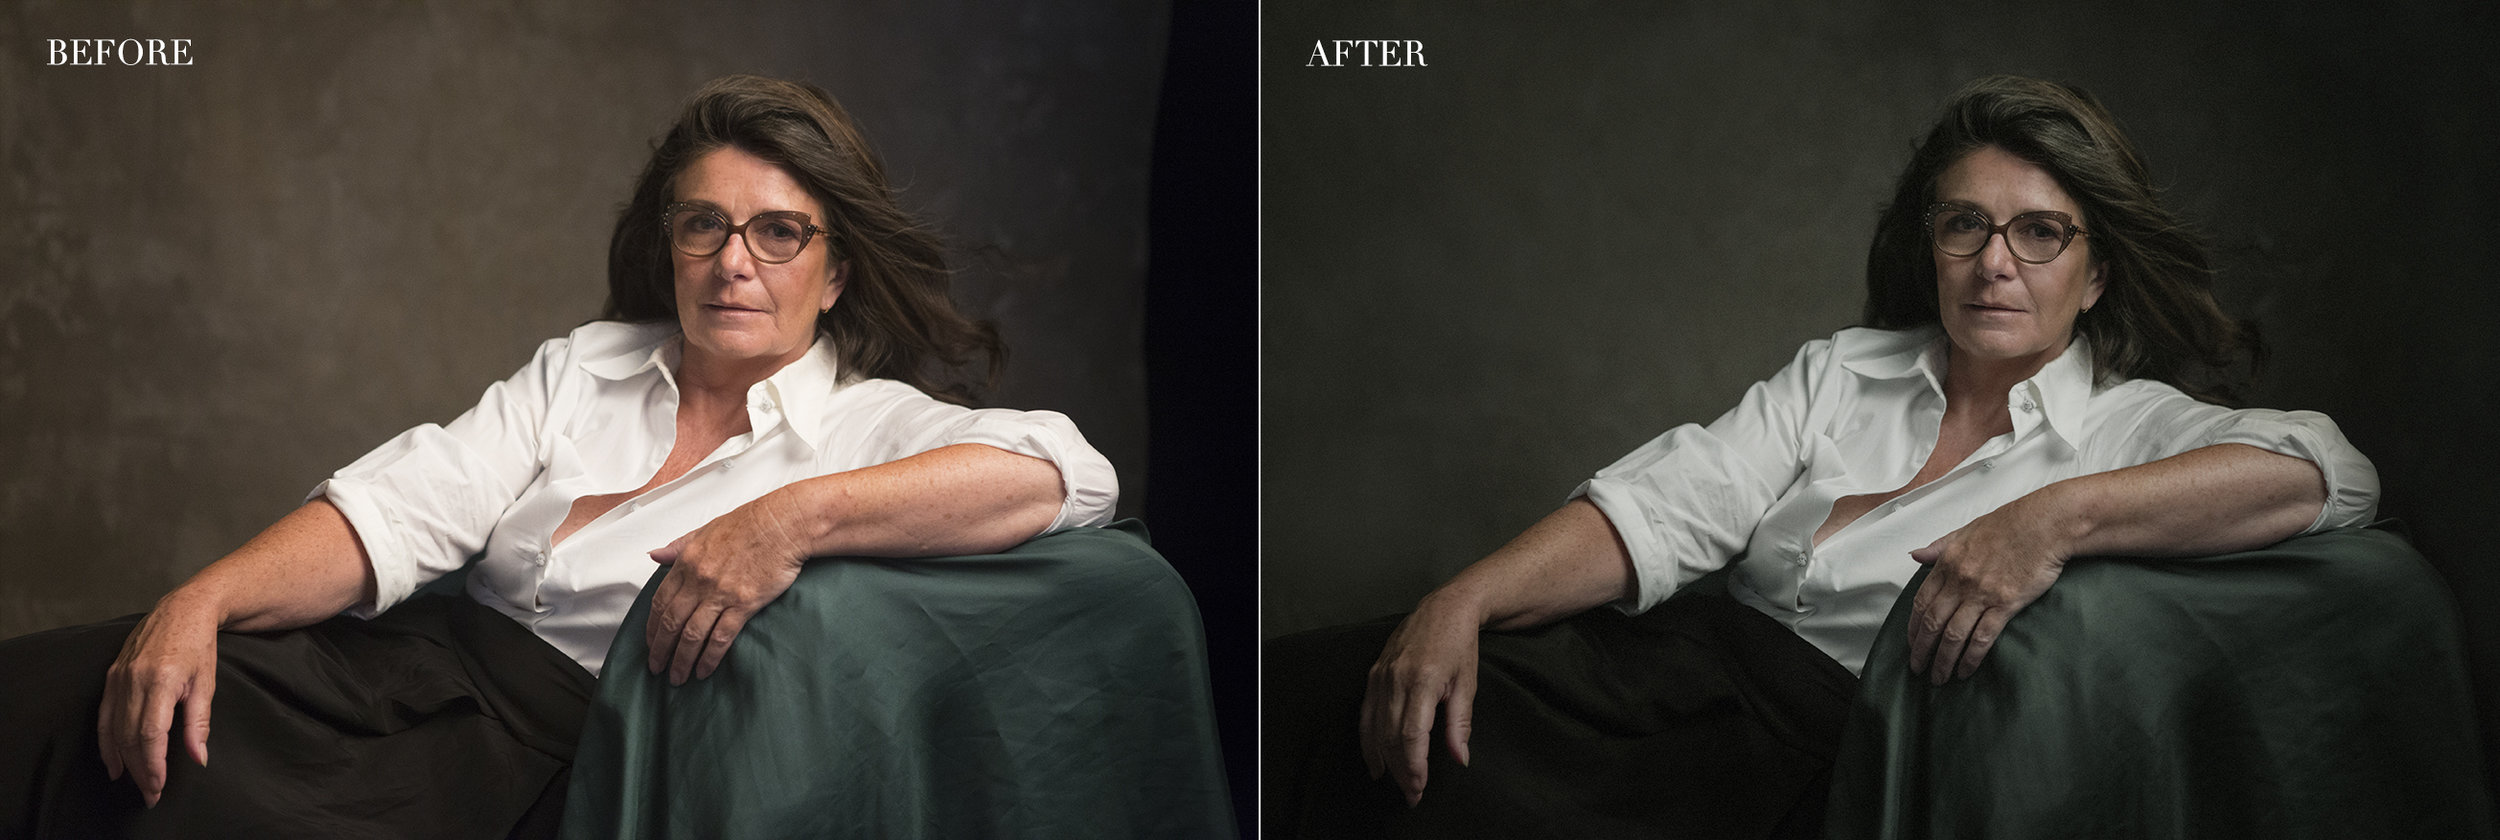 retouching-before-after-muriel.jpg